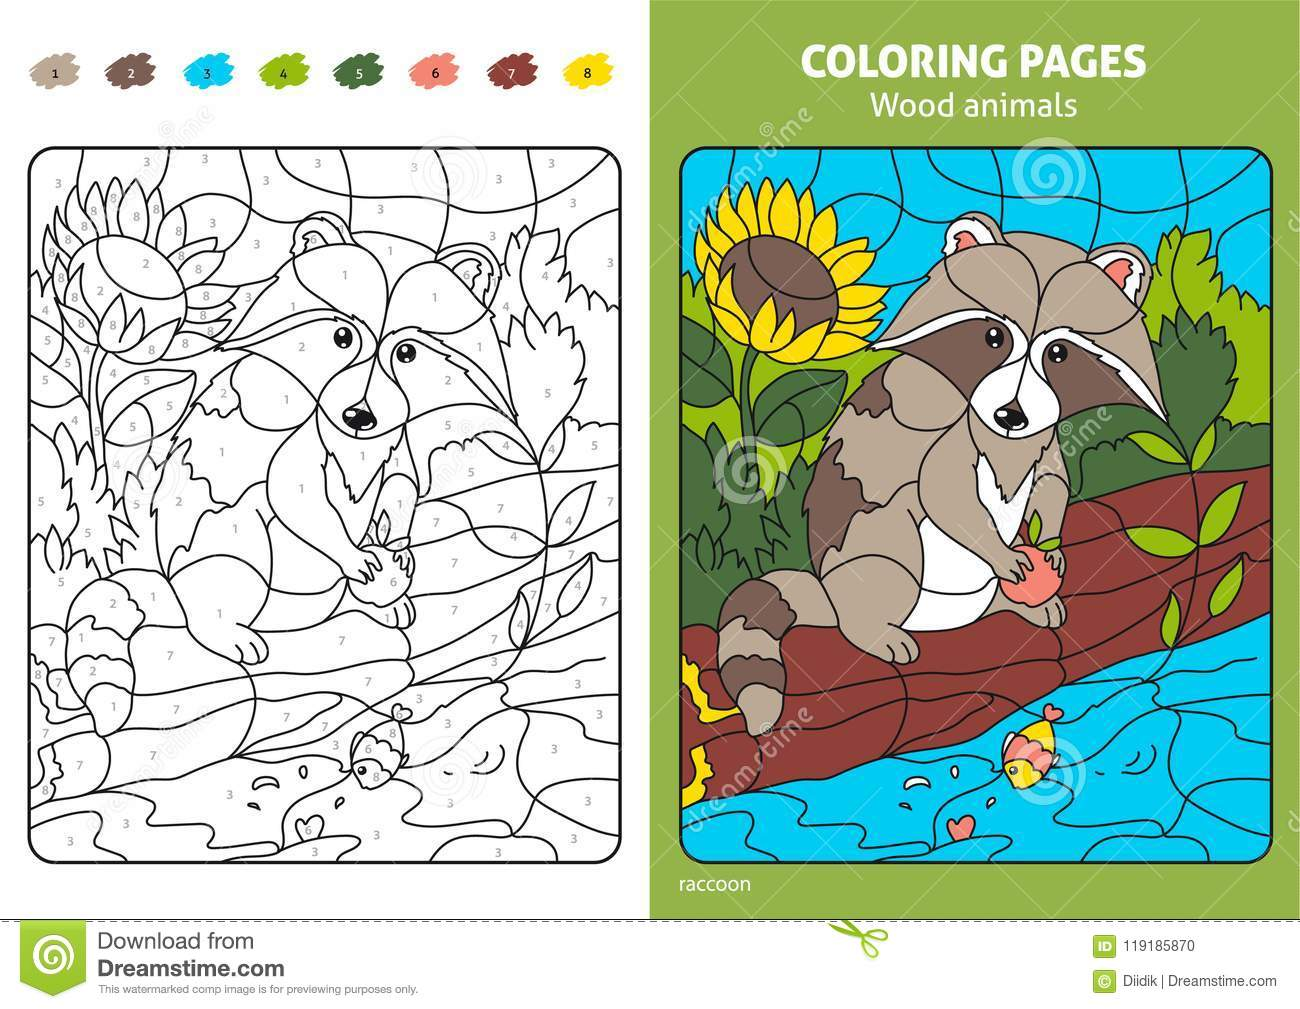 Wood Animals Coloring Page For Kids, Raccoon. Stock Vector ...